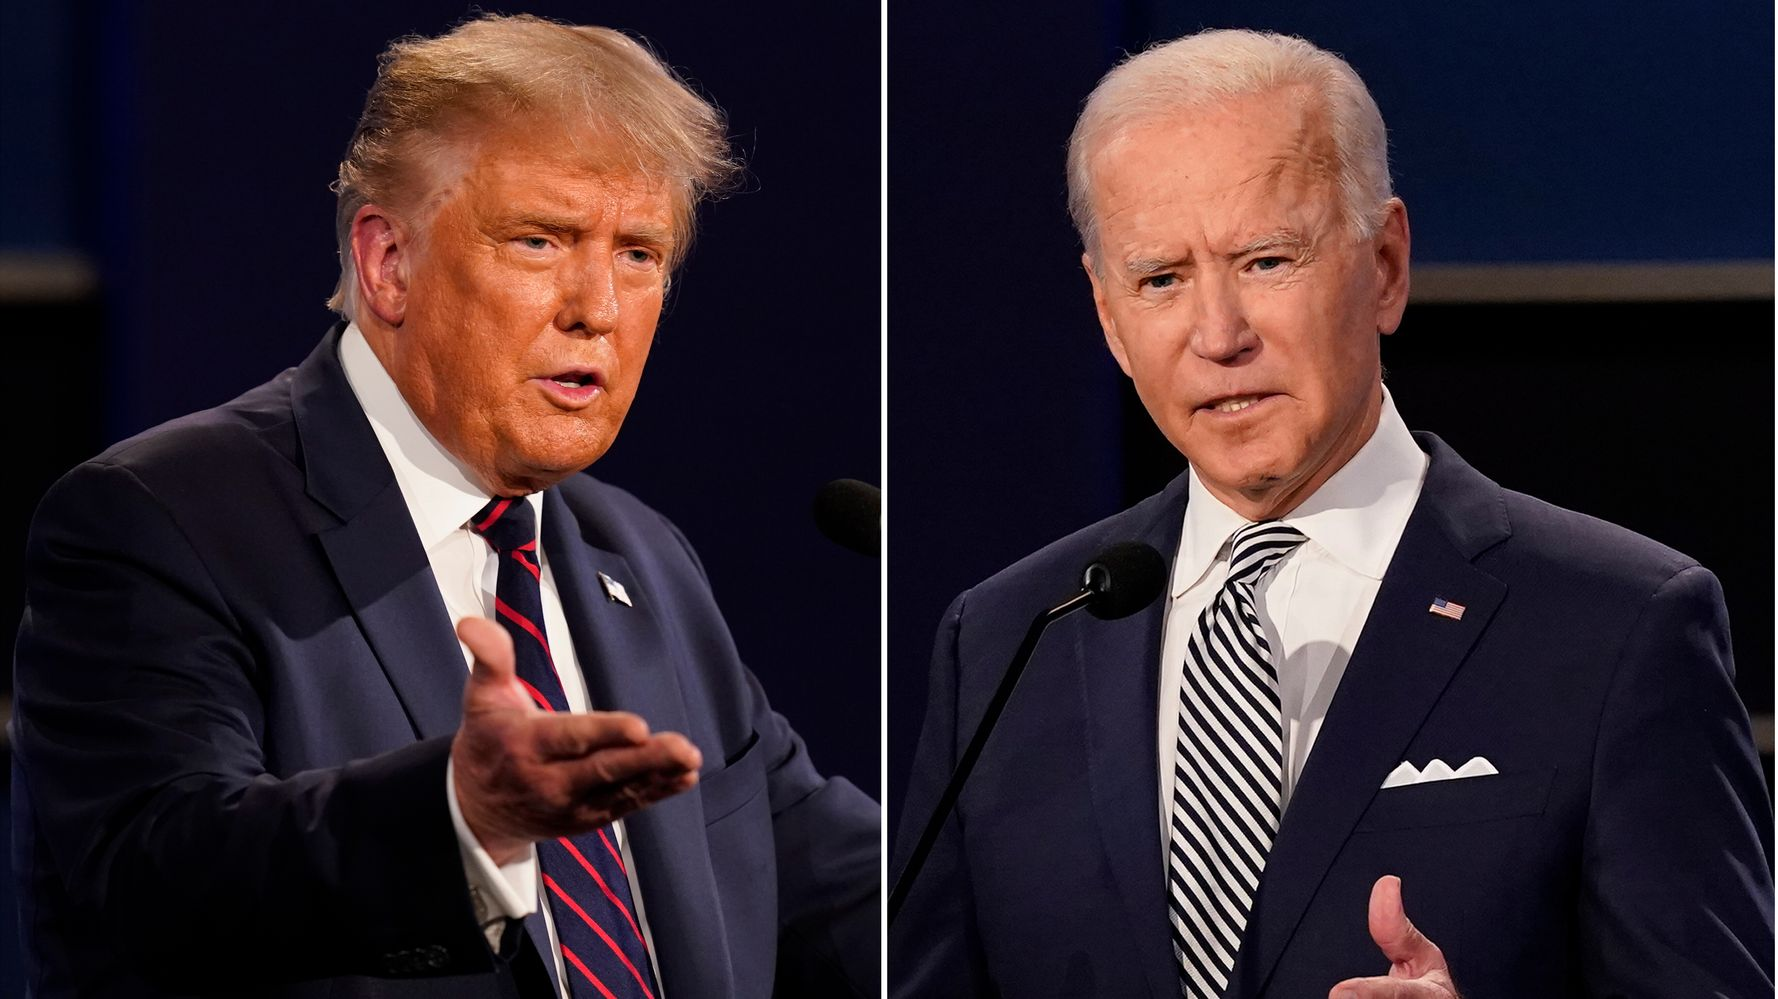 Trump vs. Biden On Health Care: A Stark Choice For Voters